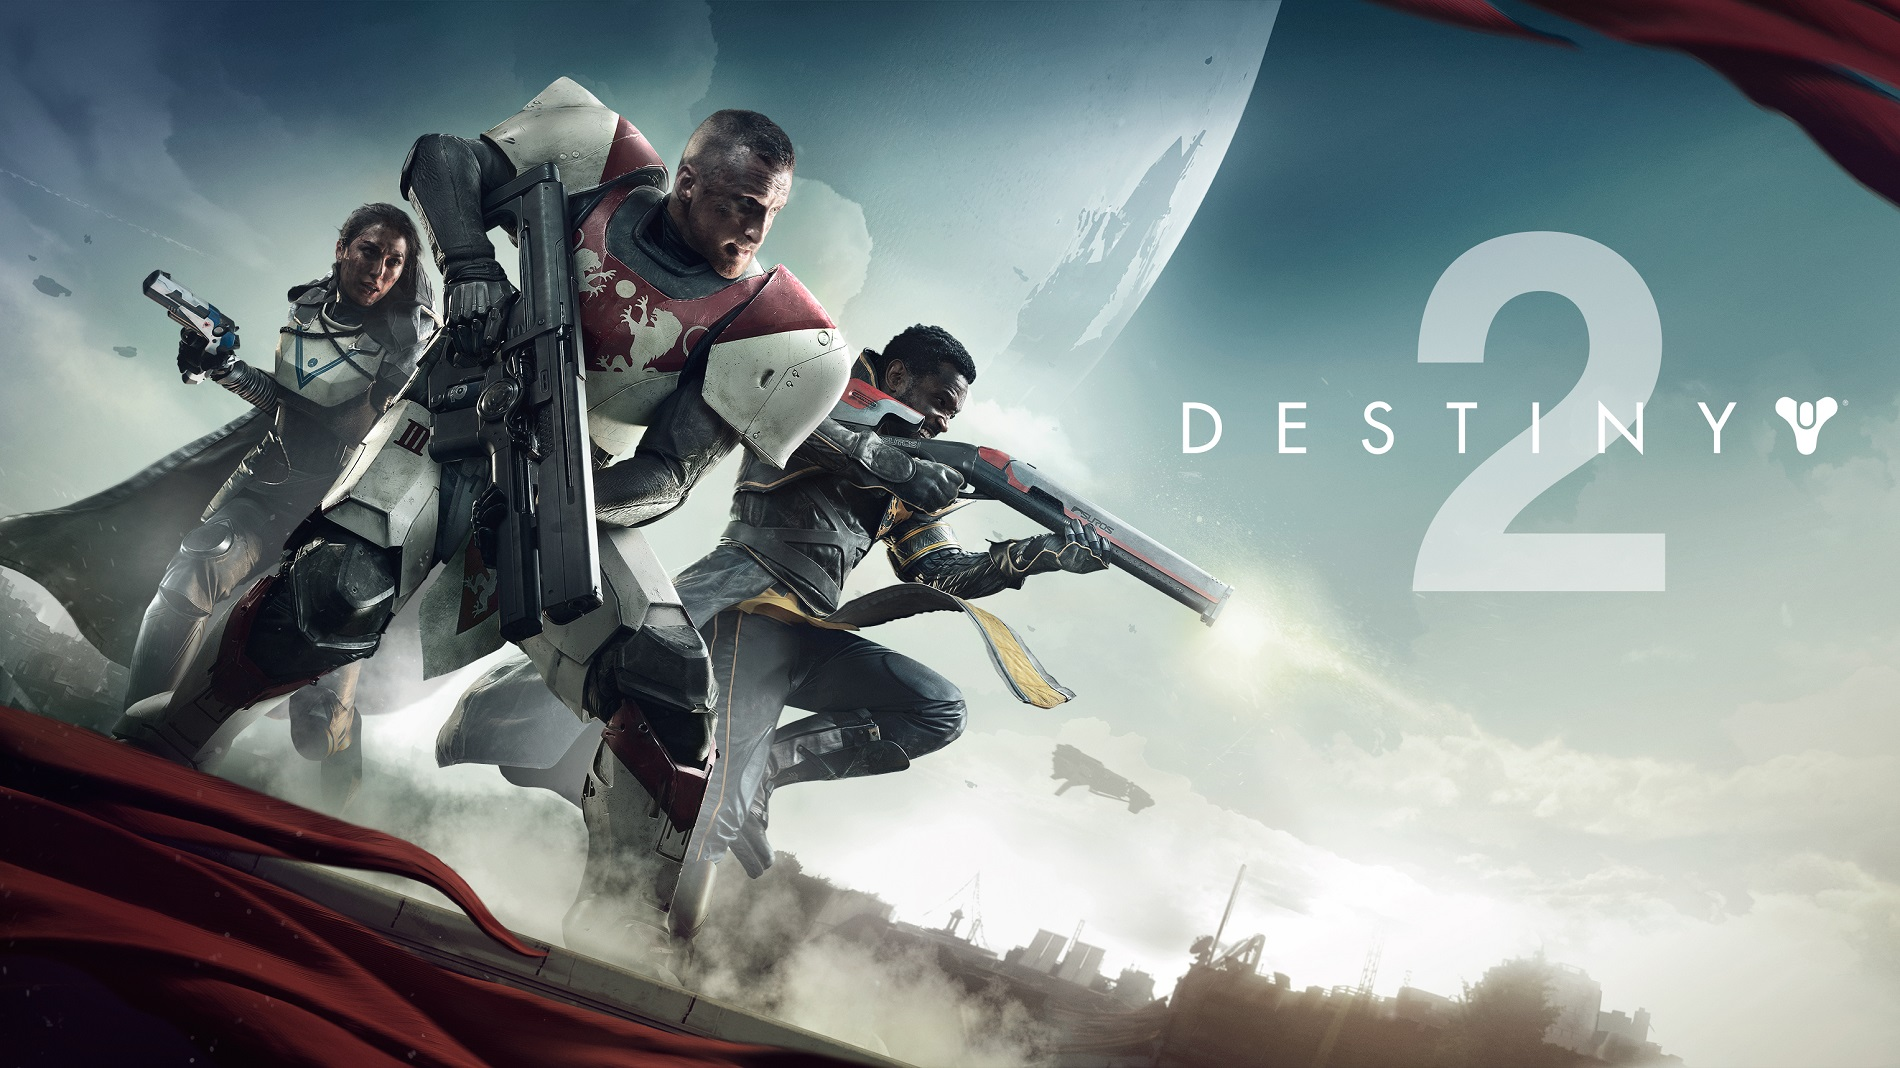 destiny-2-official-reveal-art.jpg